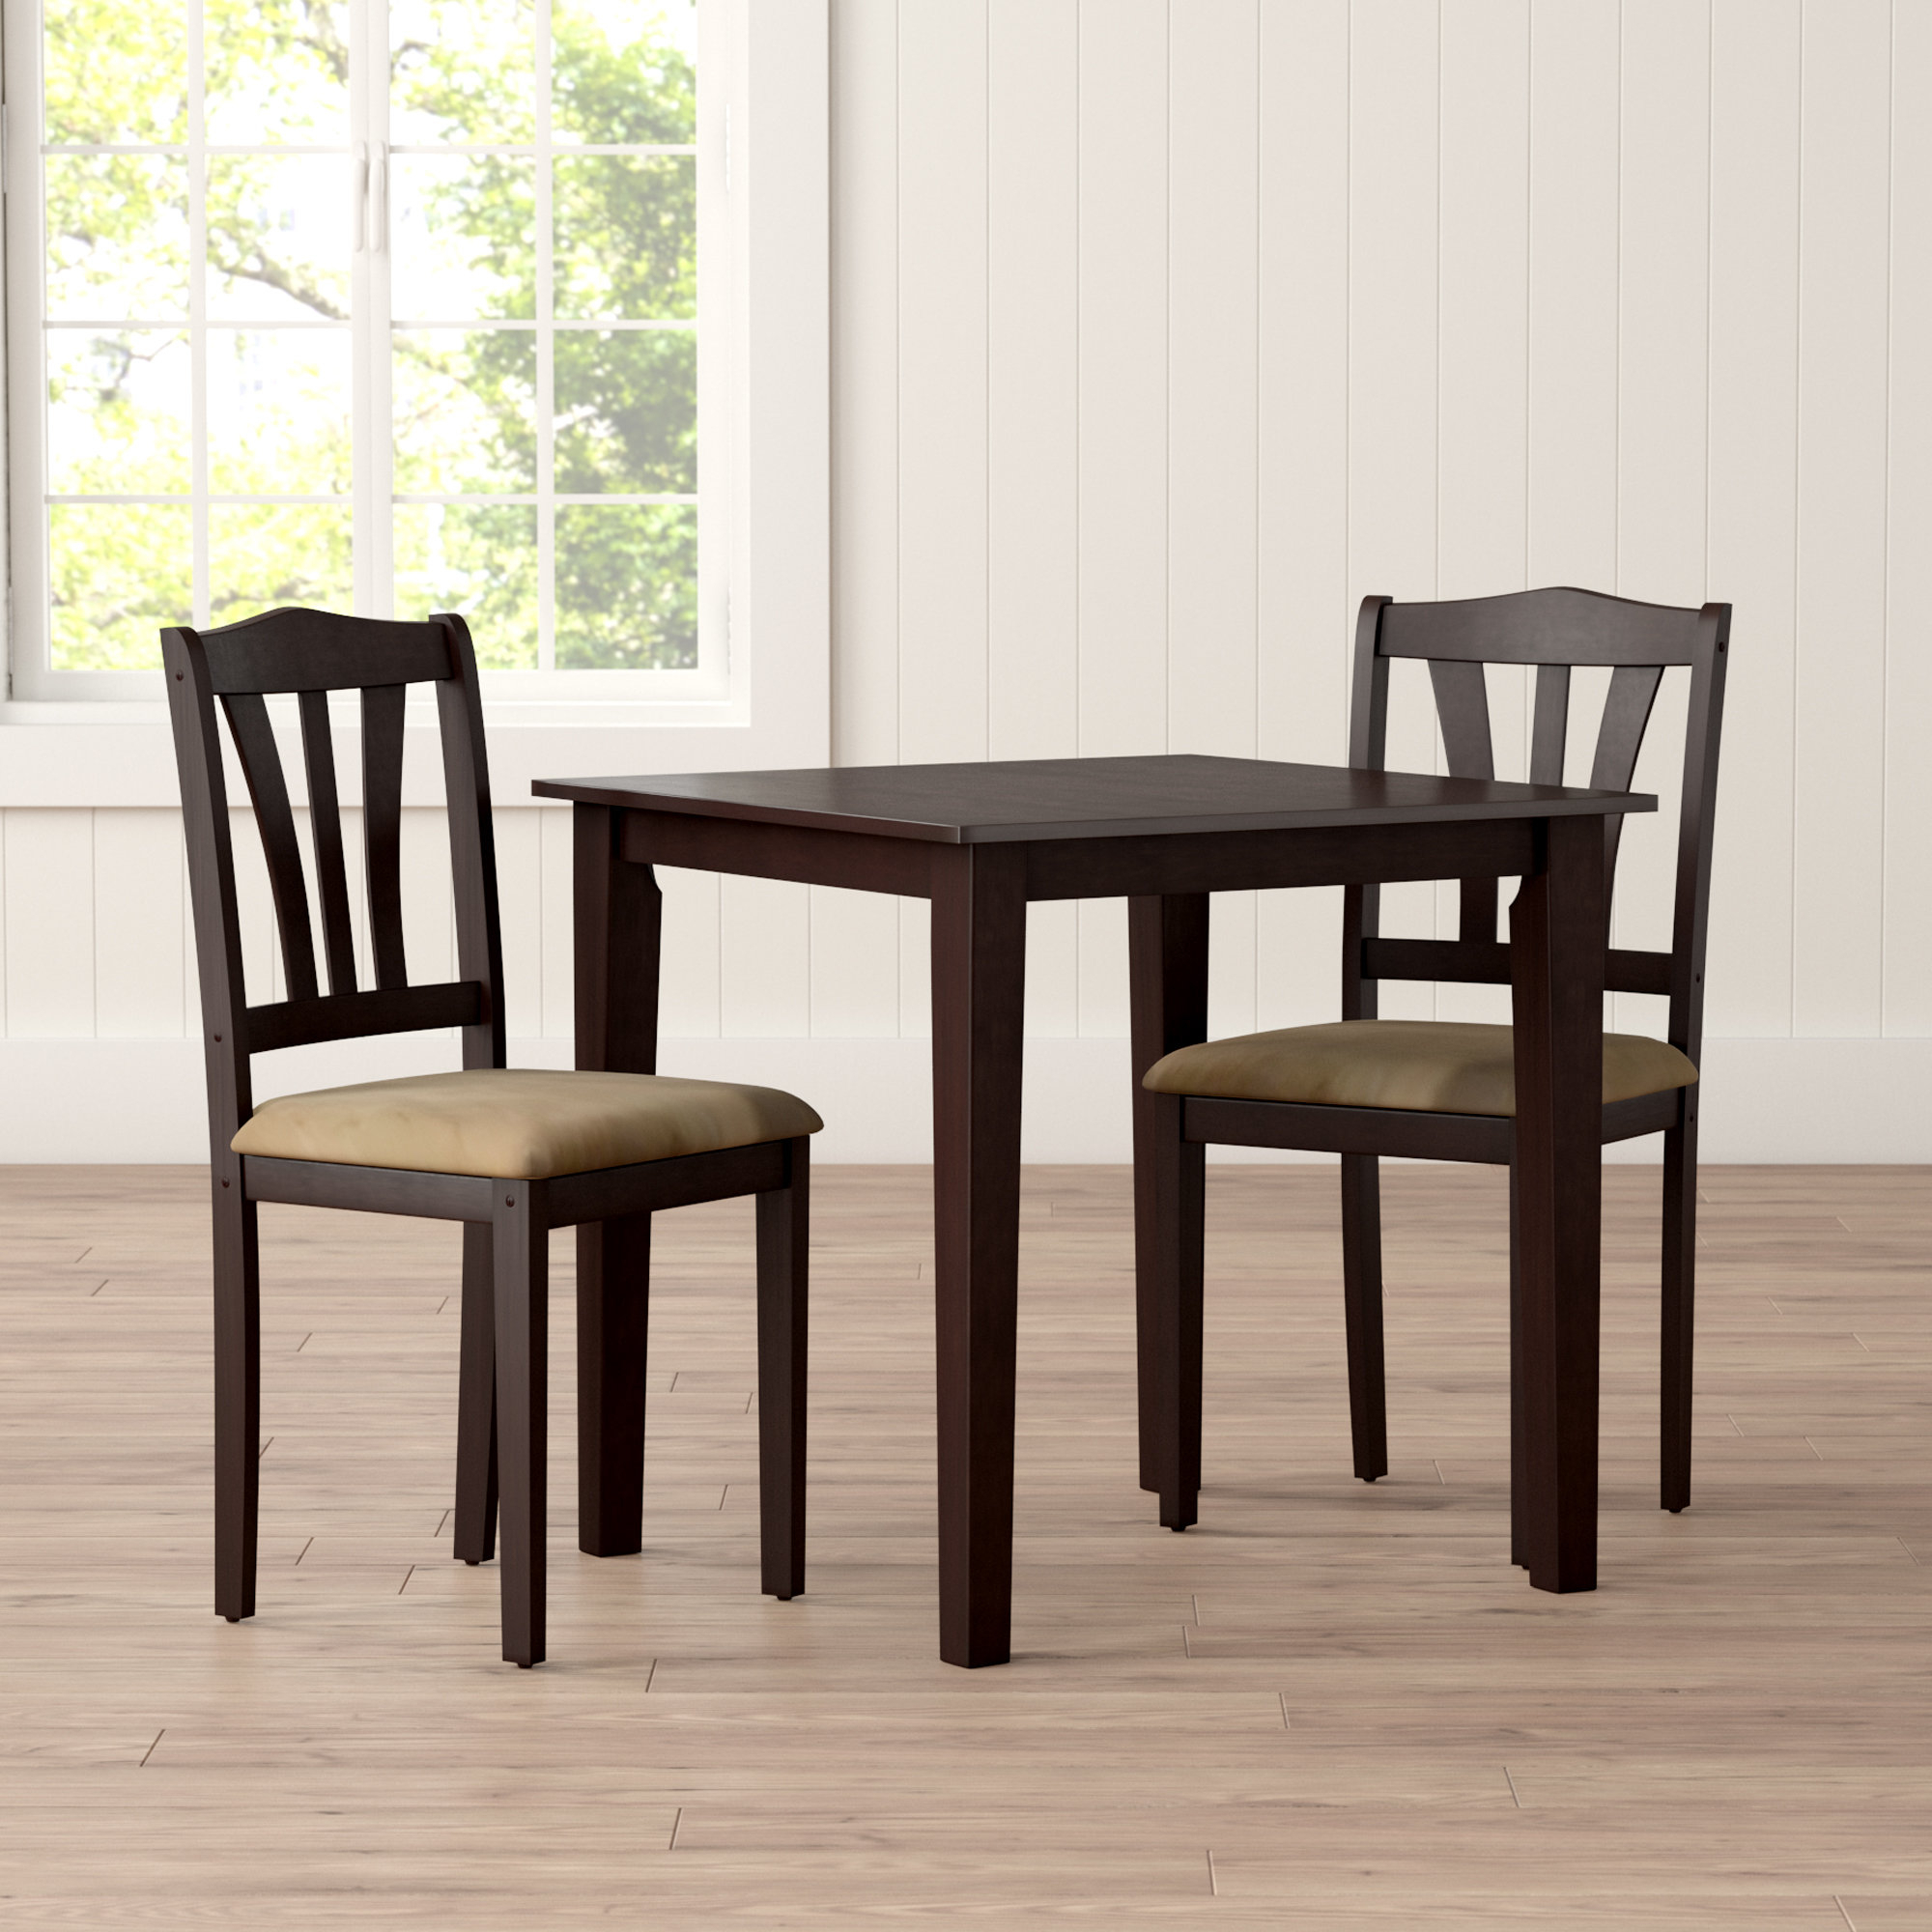 Kinsler 3 Piece Bistro Sets In Newest Alcott Hill Dinah 3 Piece Dining Set & Reviews (View 5 of 25)